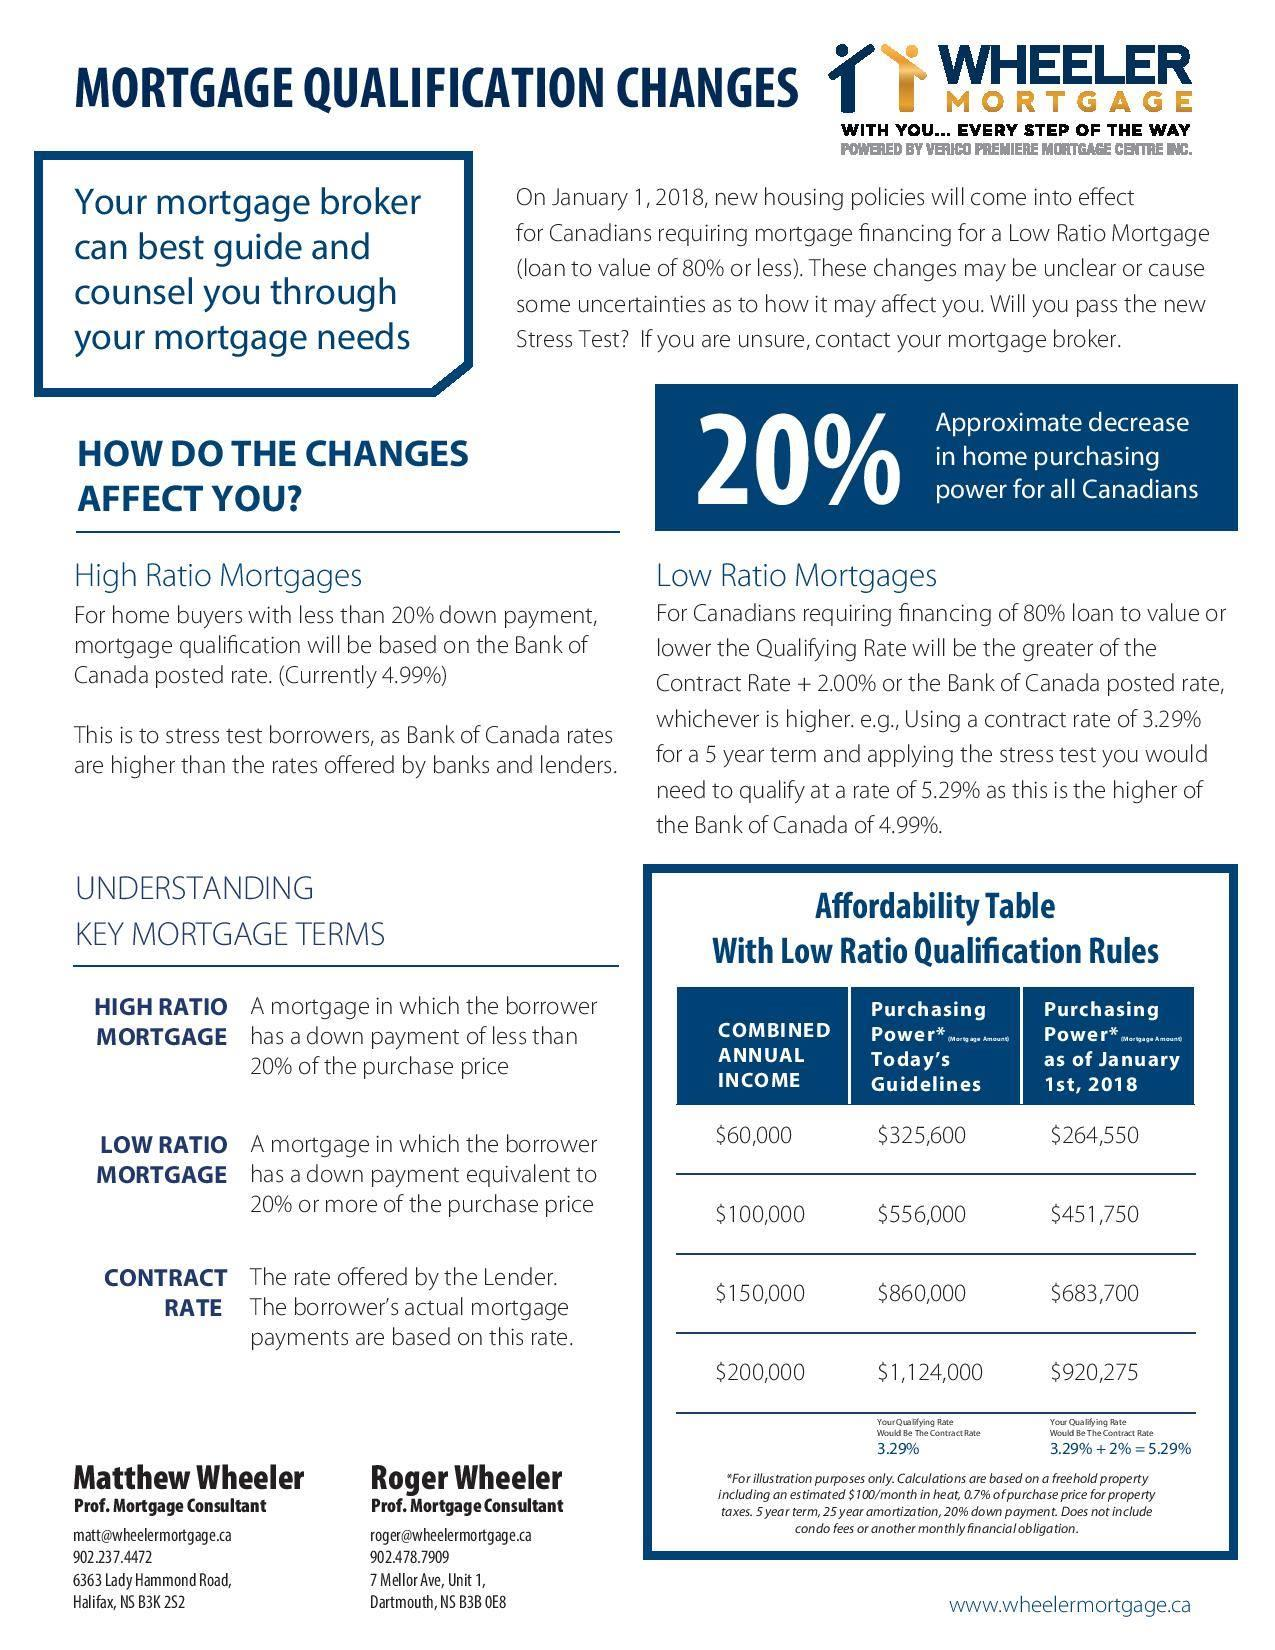 new mortgage qualification changes coming into effect on January 1, 2018 | Housing policies | obtaining a mortgage